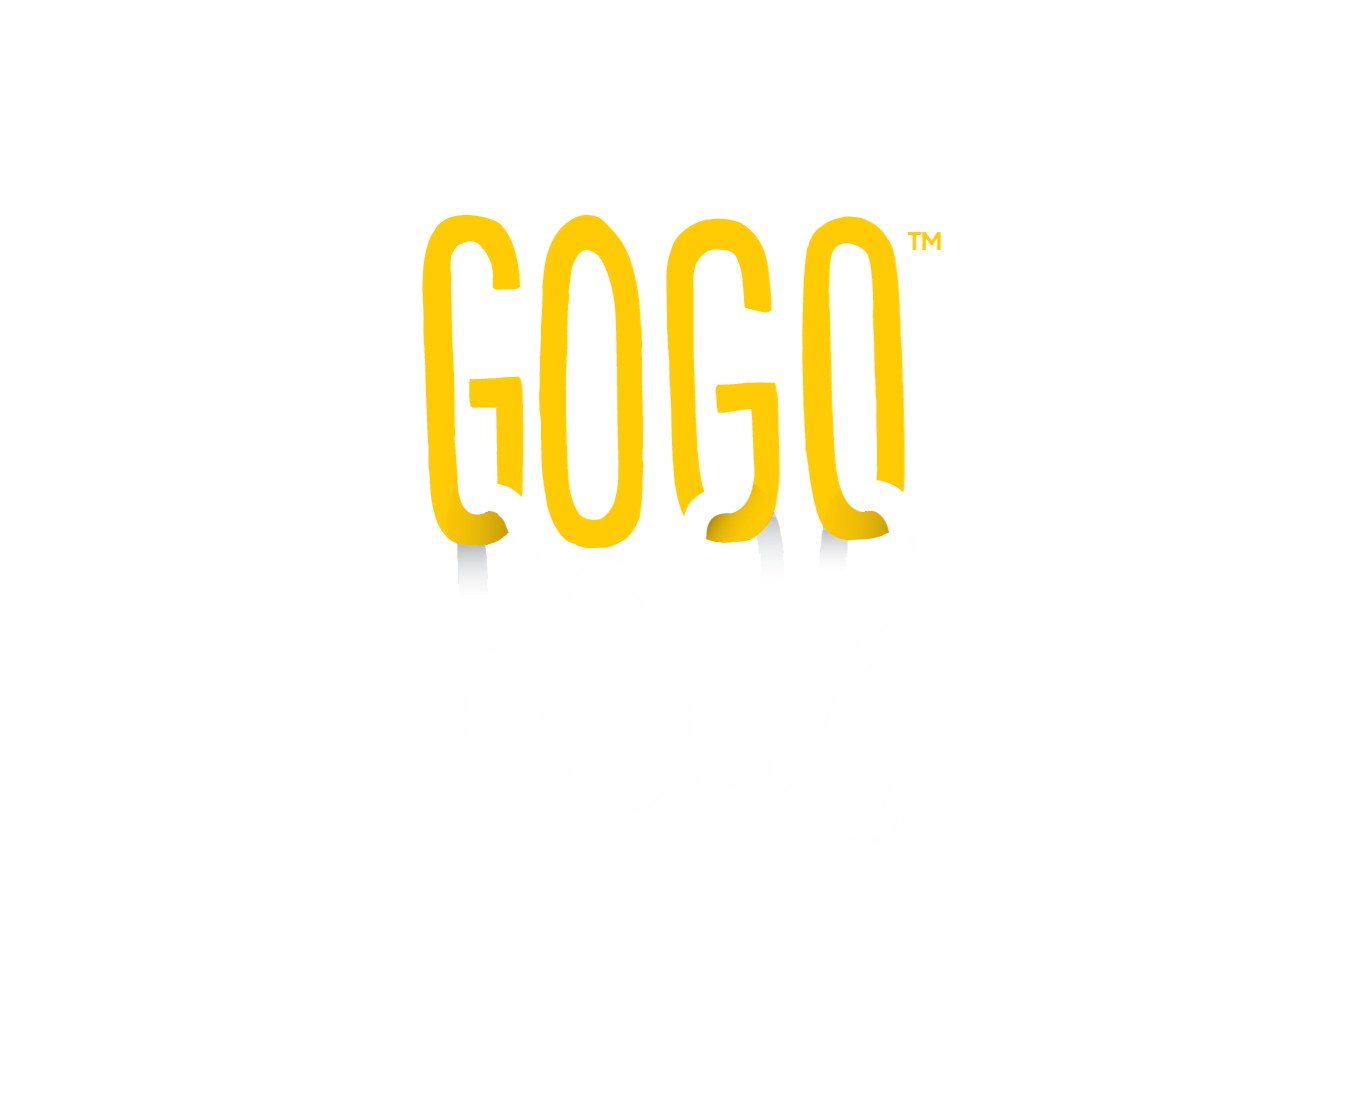 GOGO ROOS (2)_clipped_transparentv2 - Edited.png